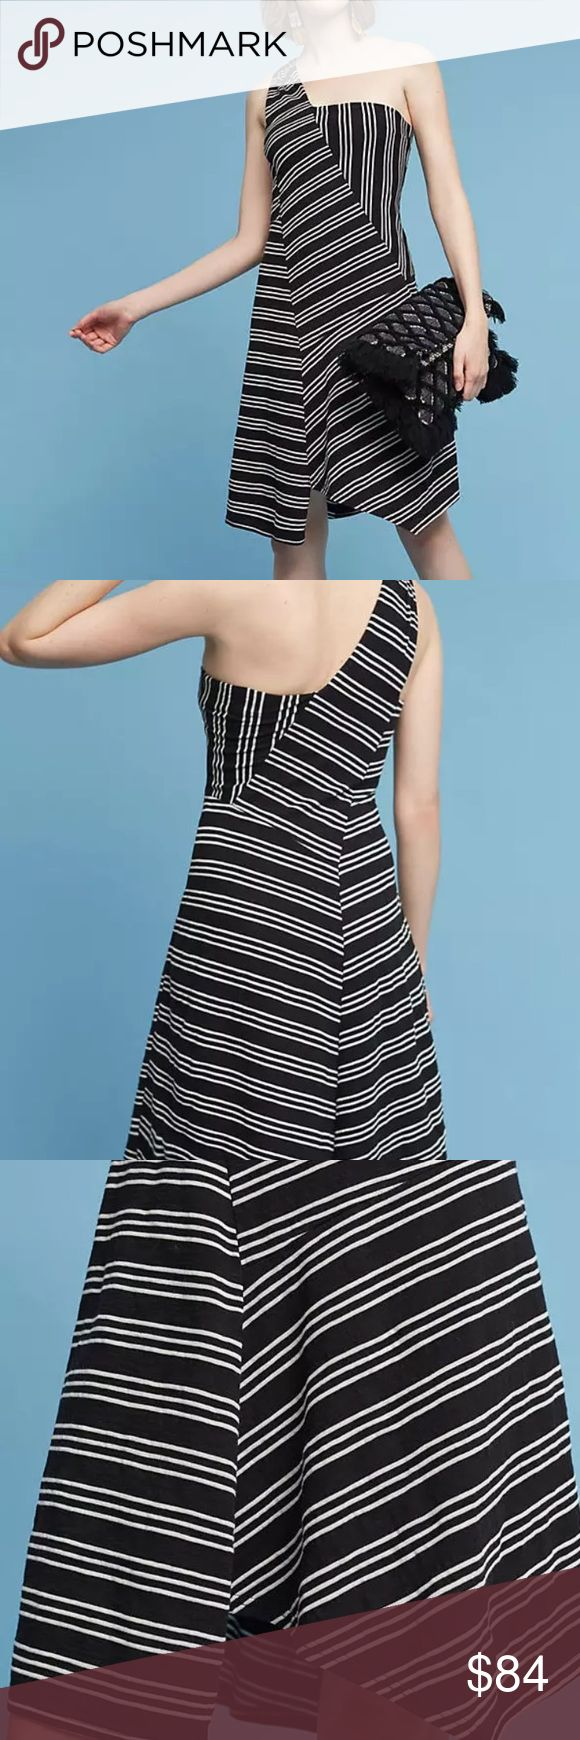 NWT Anthropologie Maeve moka one shoulder dress The name Maeve references a purple flower, a Greek goddess and a famously beautiful Irish warrior queen. In light of these inspirations, it's no surprise that the Maeve brand is both feminine and playful, a representation of beauty and strength at once.  By Maeve Cotton, polyester Striped print Pullover styling Hand wash Anthropologie Dresses